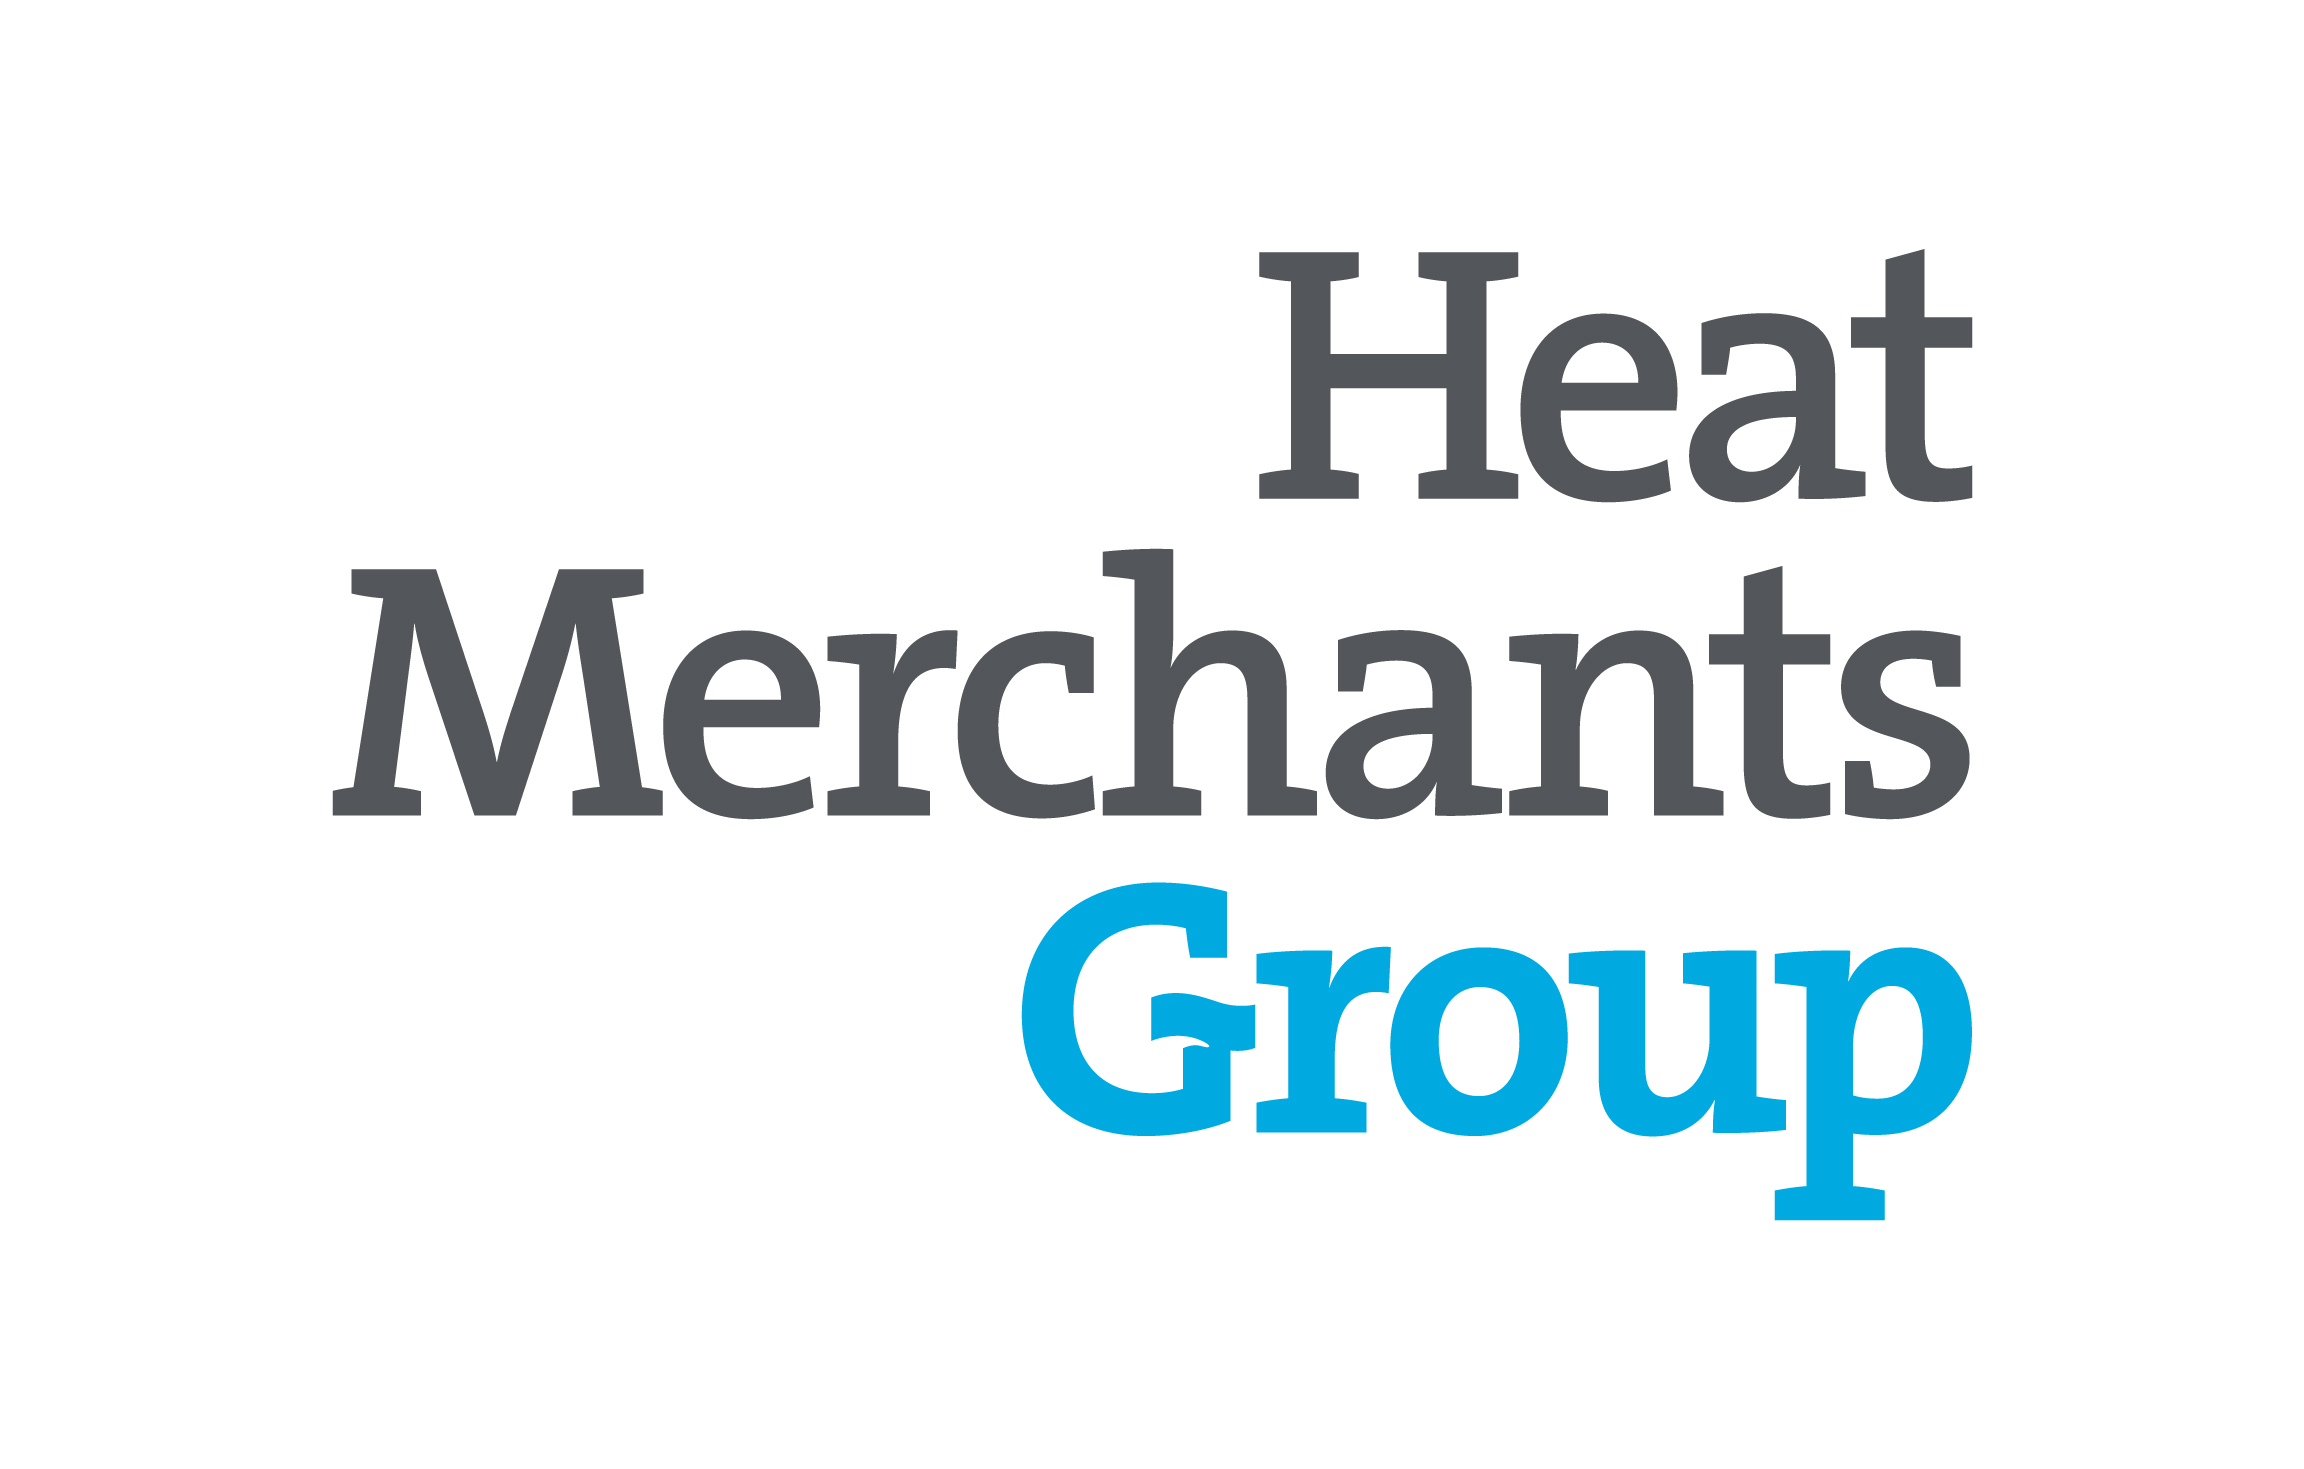 Heat Merchants Group logo